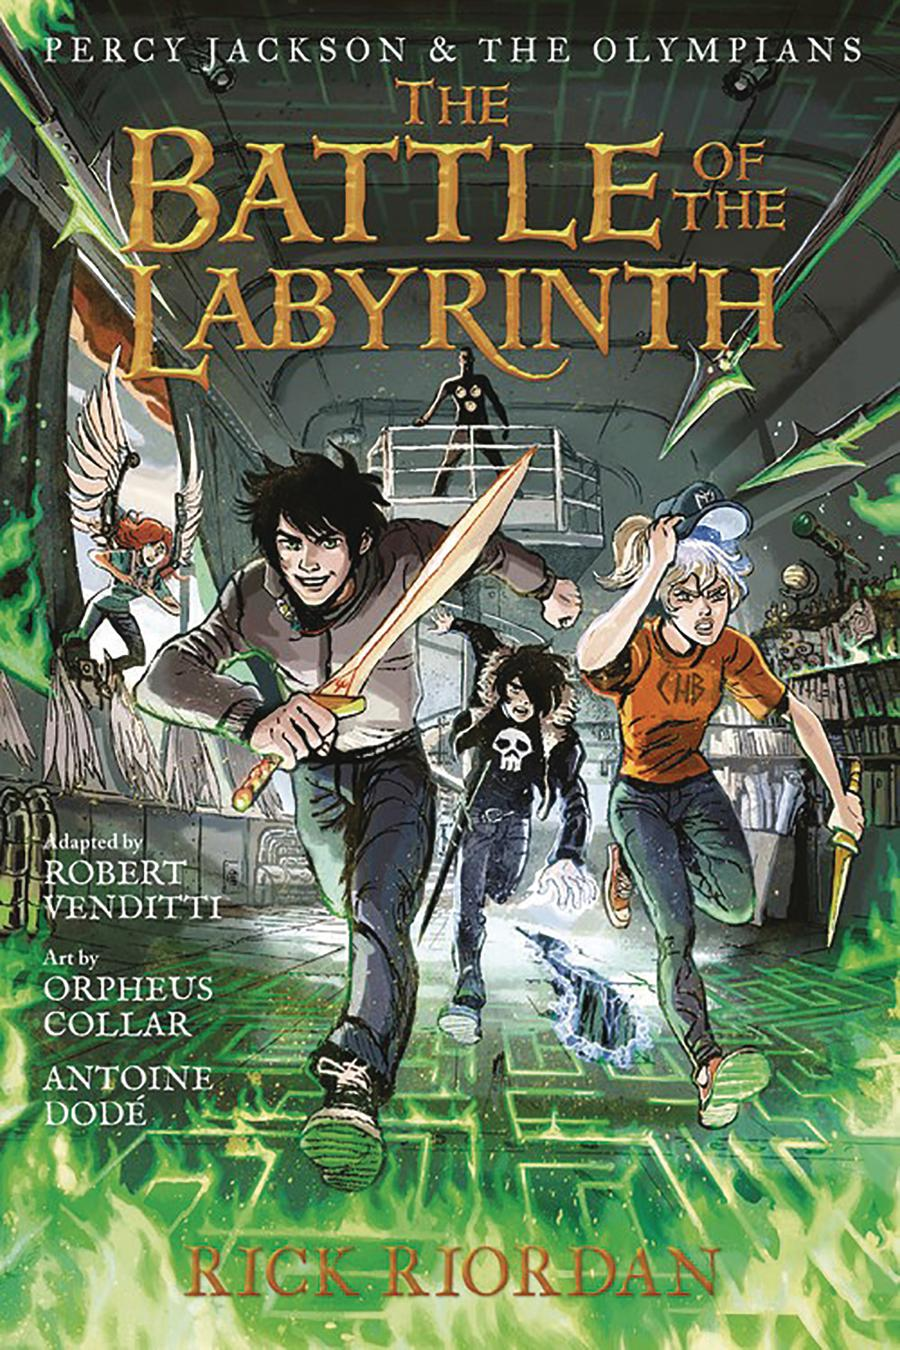 Percy Jackson And The Olympians Vol 4 Battle Of The Labyrinth TP